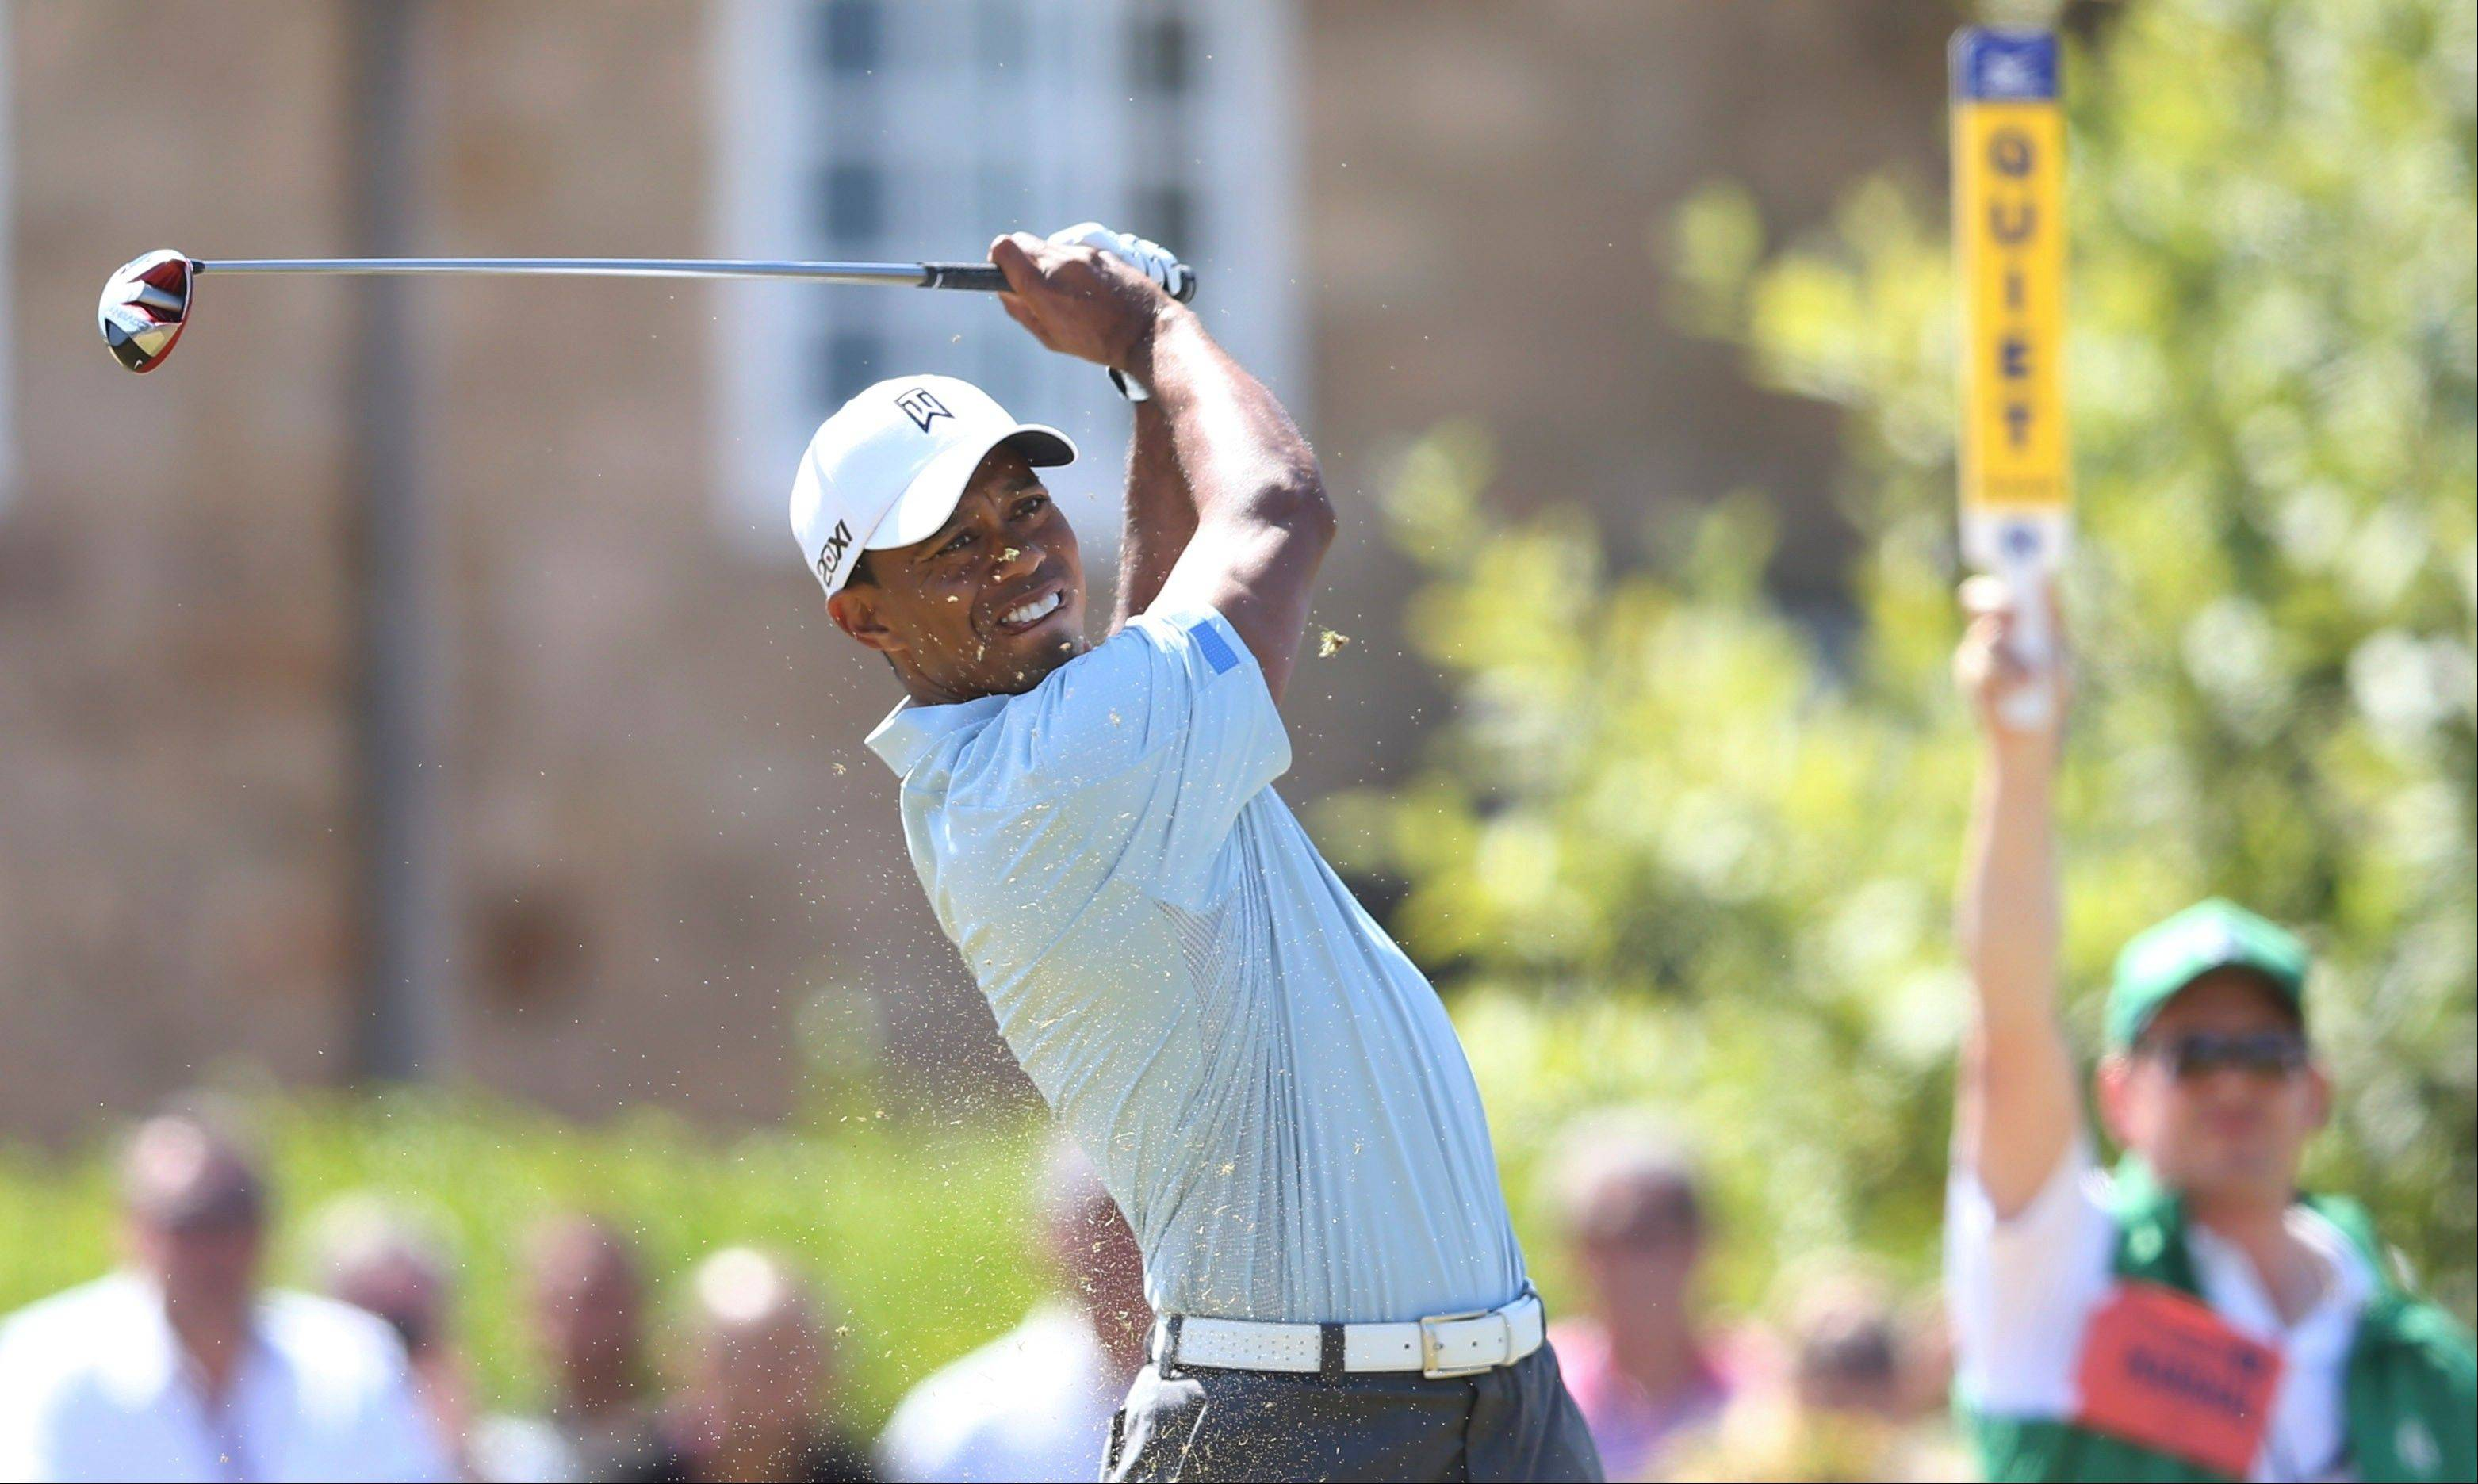 Tiger Woods plays a shot off the 10th tee Friday during the second round of the British Open at Muirfield, Scotland.